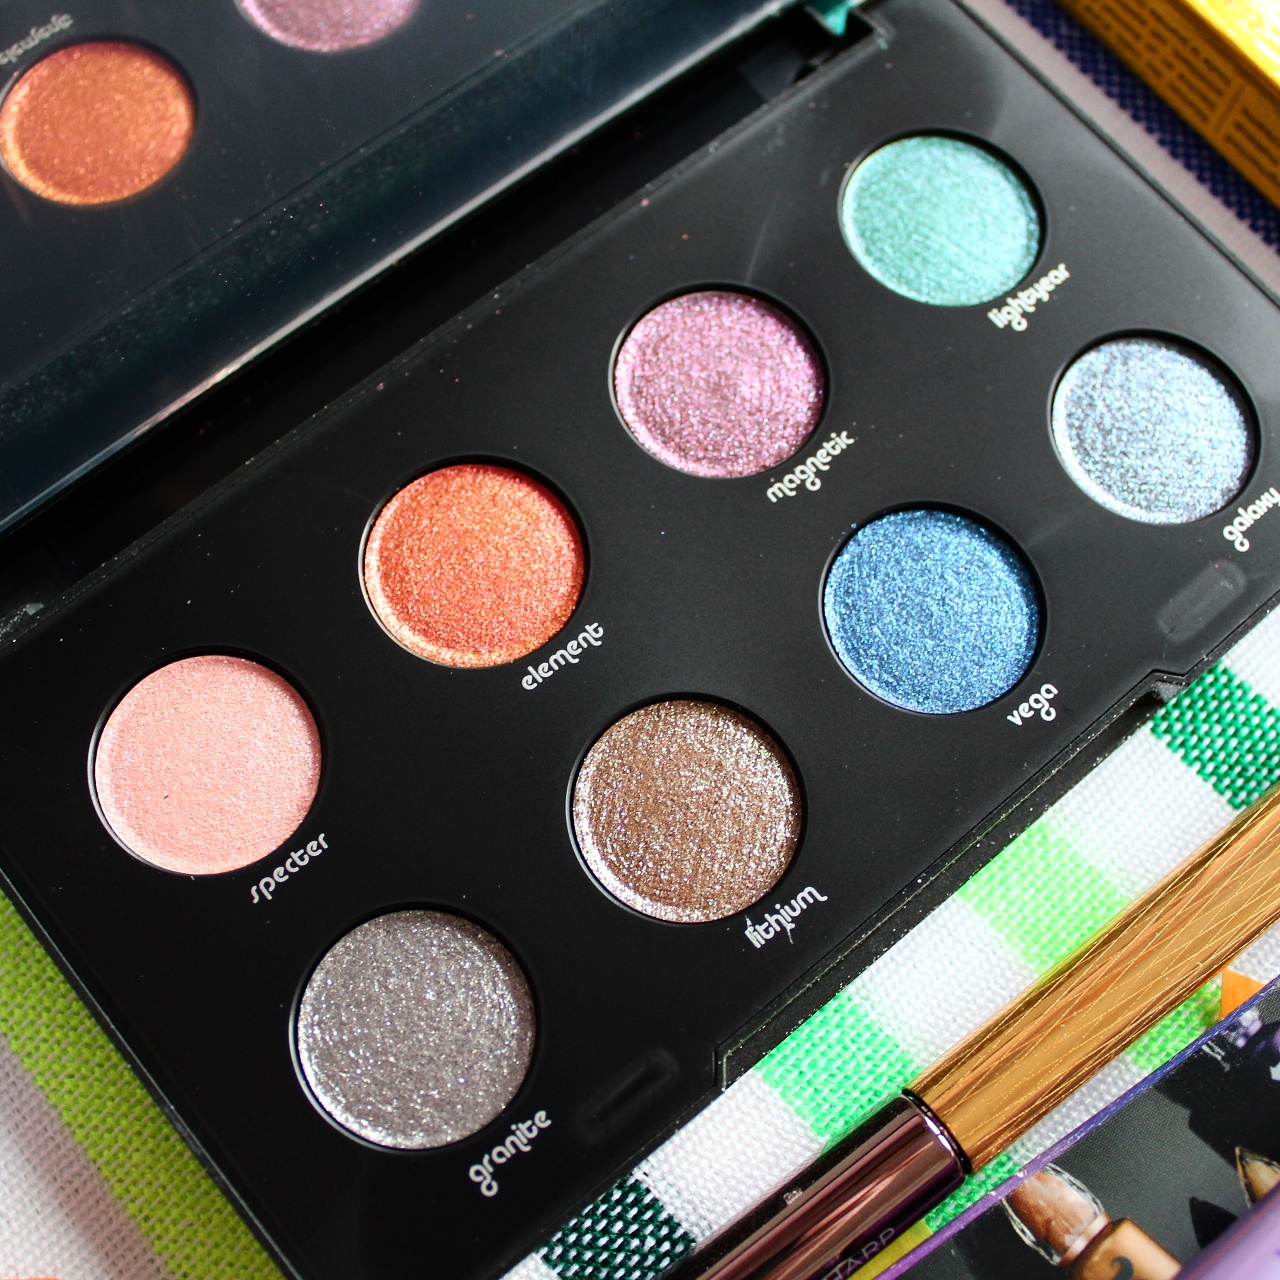 Urban Decay Moondust Glitter Eyeshadow Palette Review